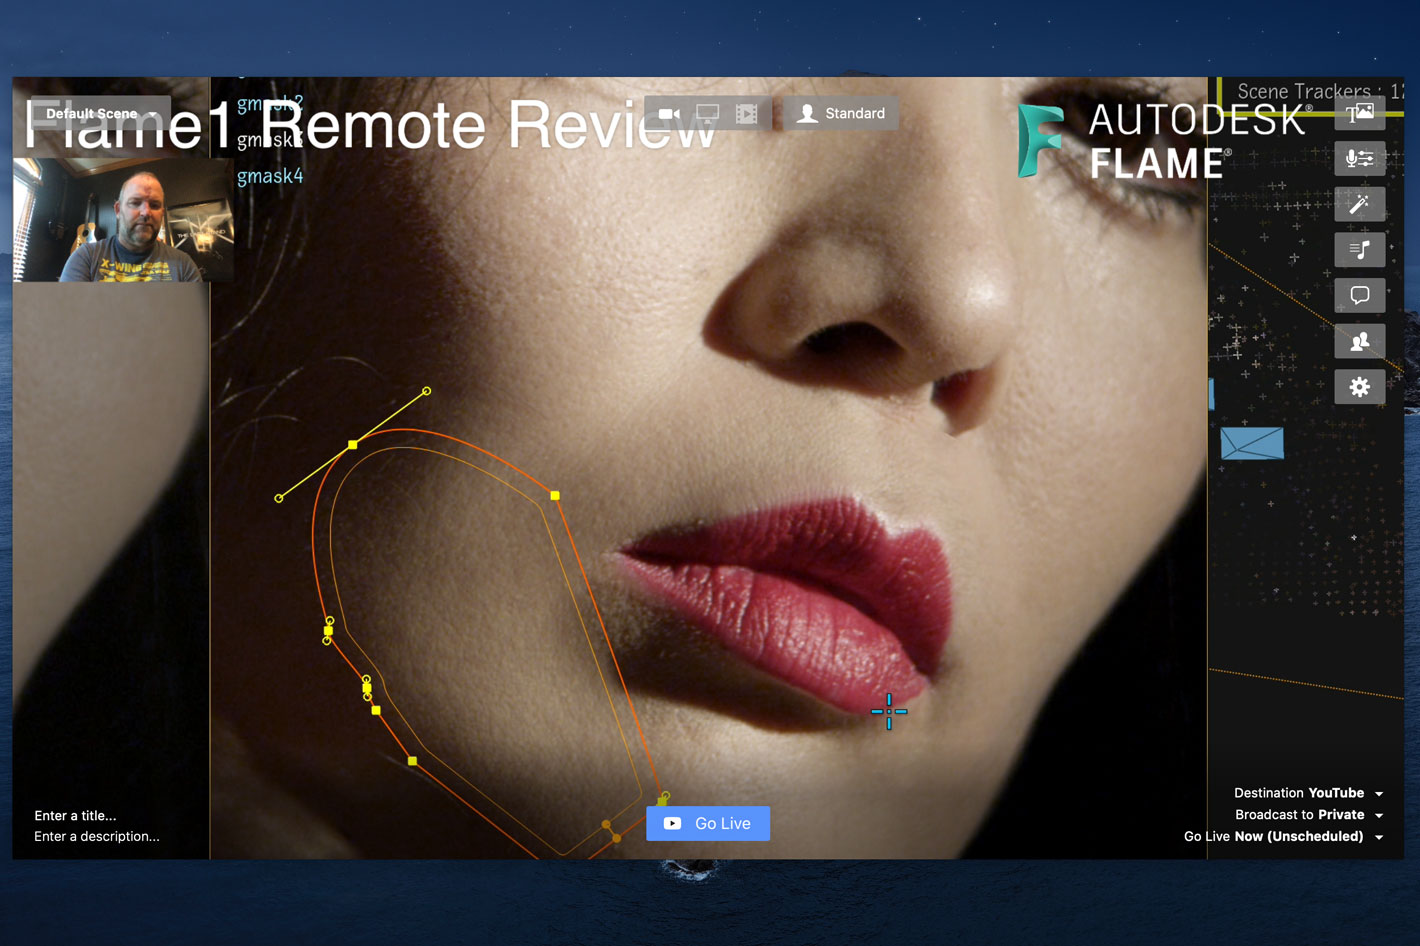 Autodesk's Flame update boosts creative collaboration